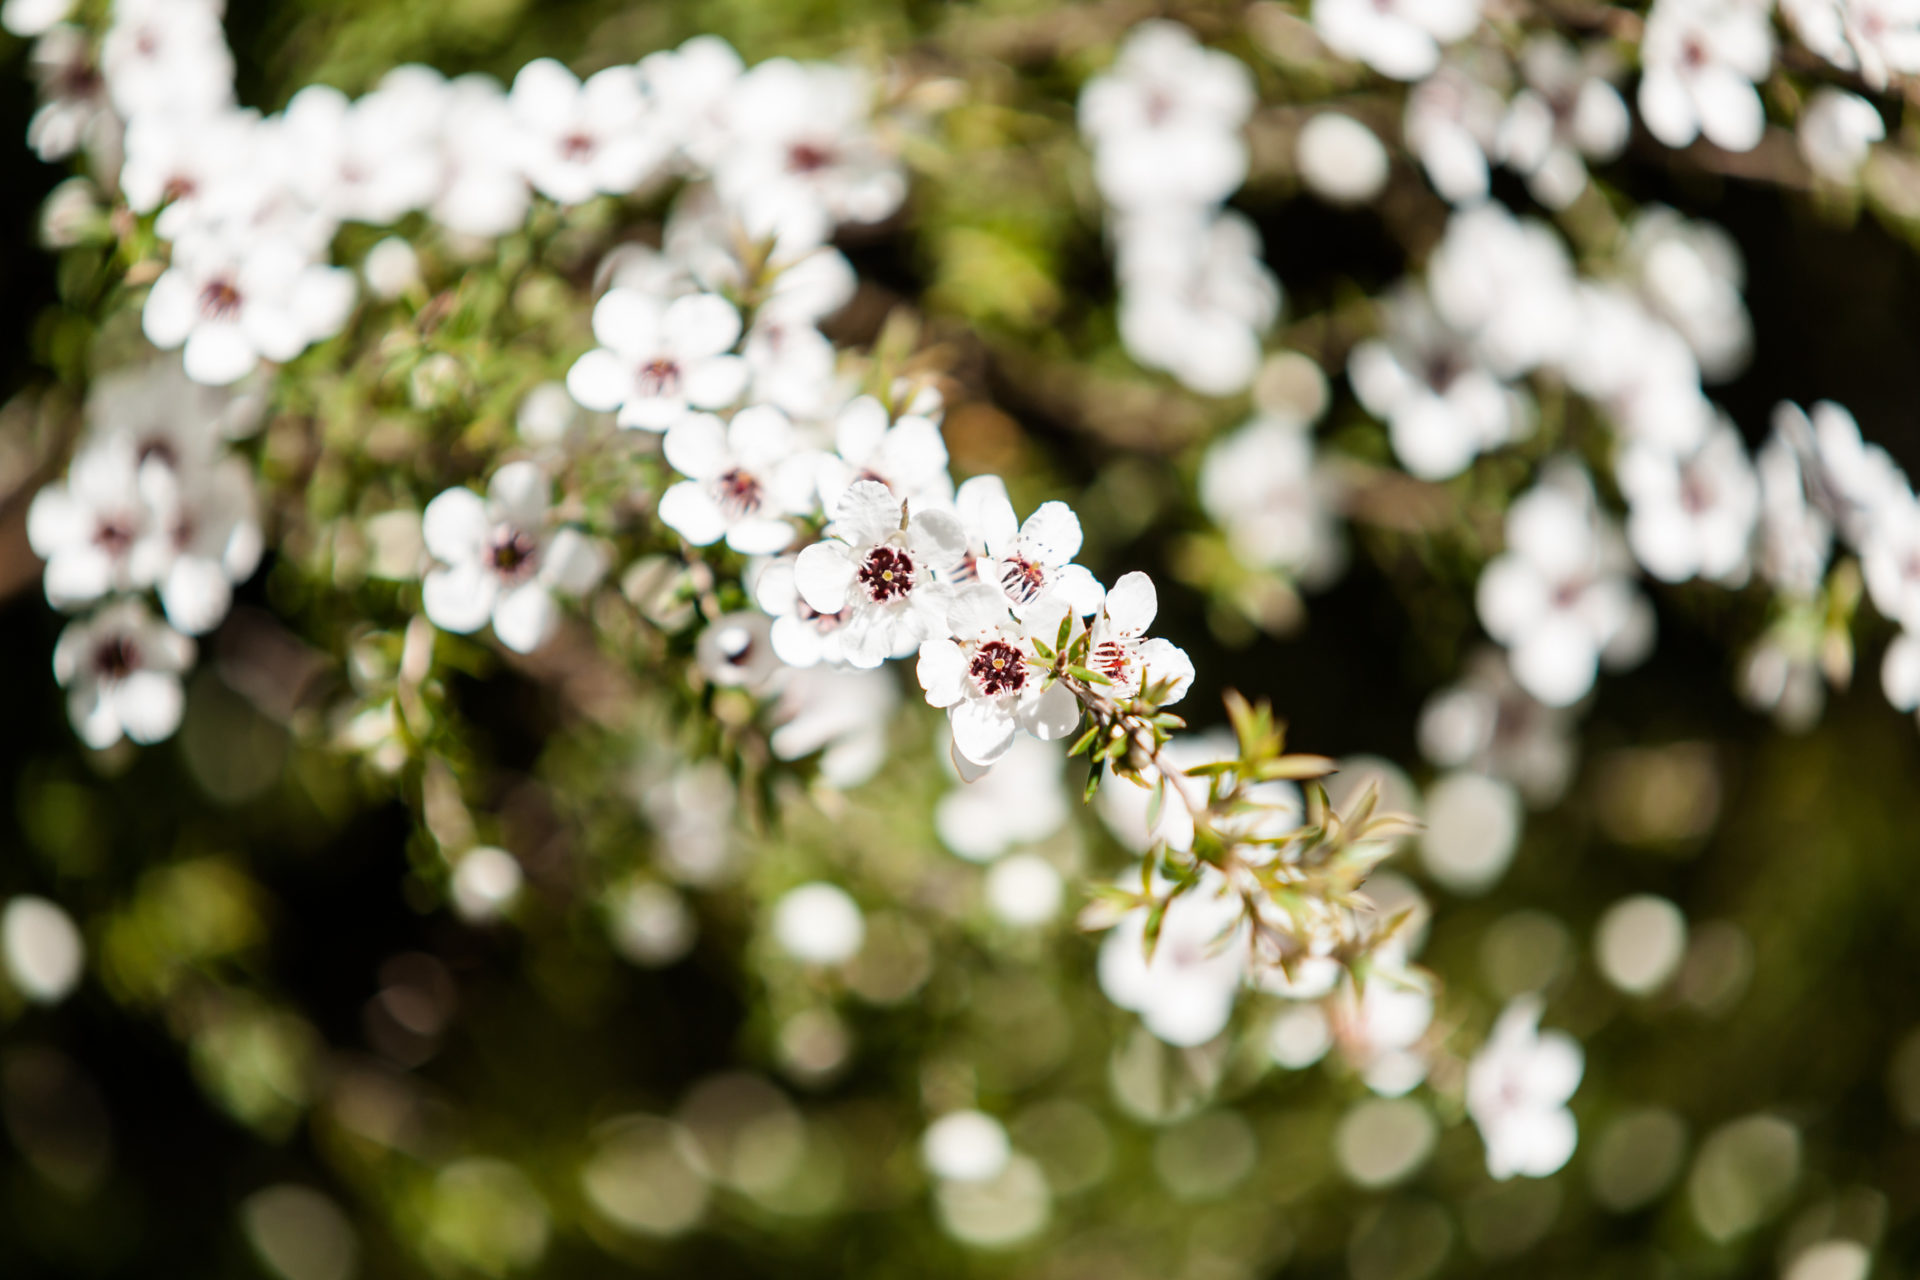 flowering plant in the myrtle family New Zealand manuka